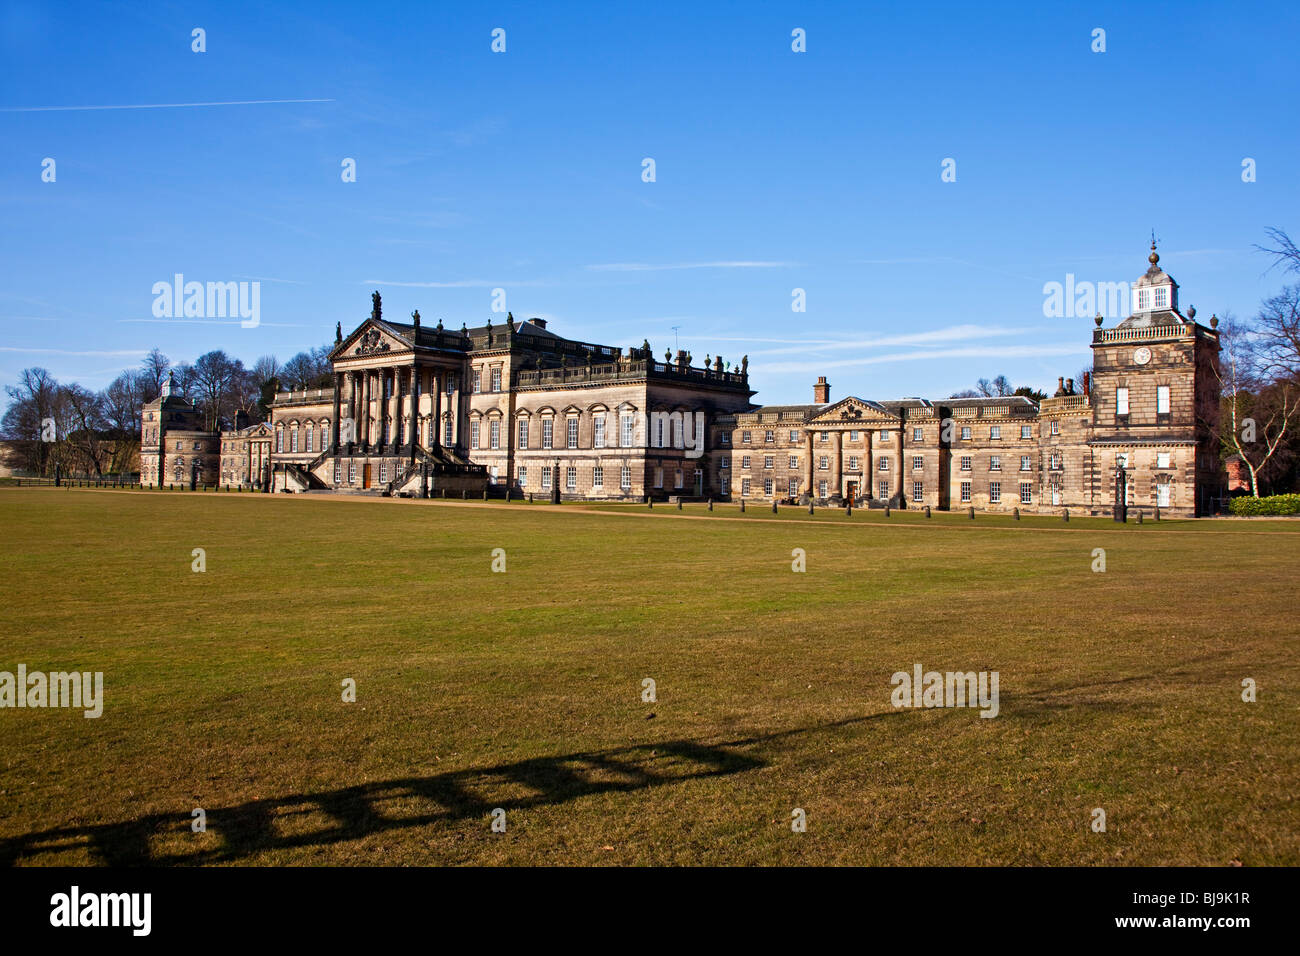 the mansion house on the wentworth woodhouse estate wentworth south Yorkshire england UK Stock Photo